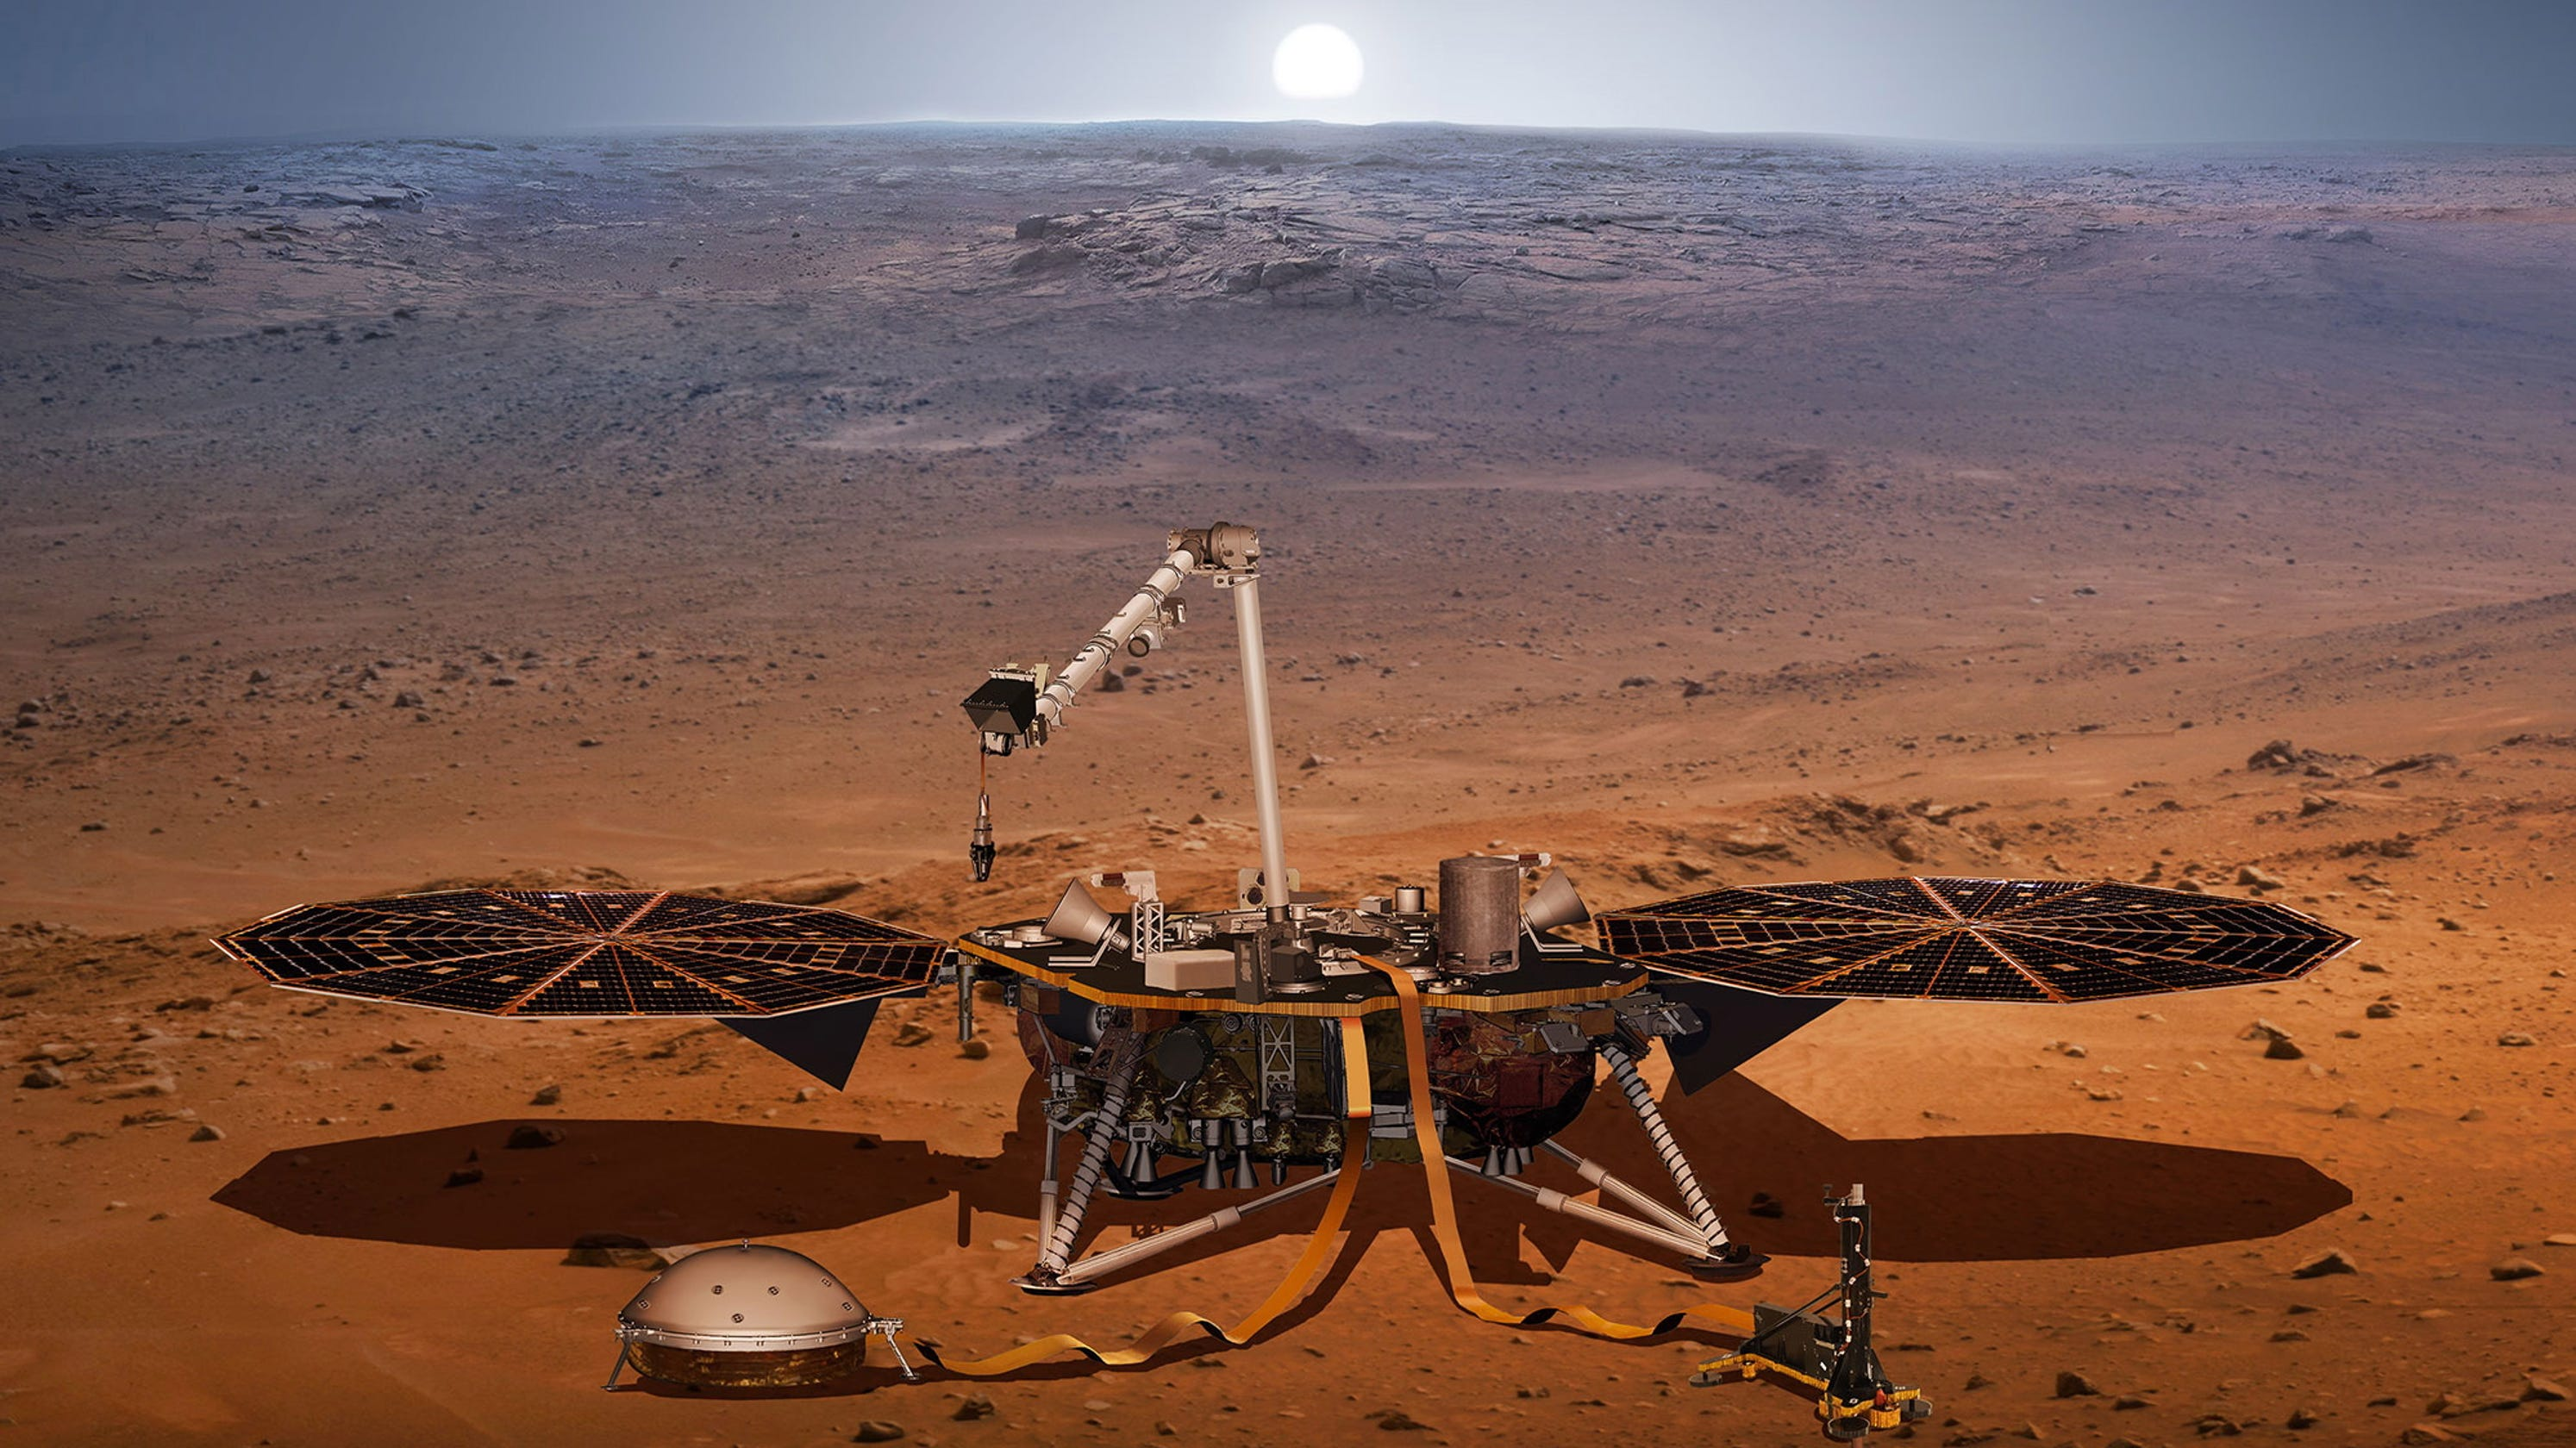 insight landing on mars live stream - photo #9